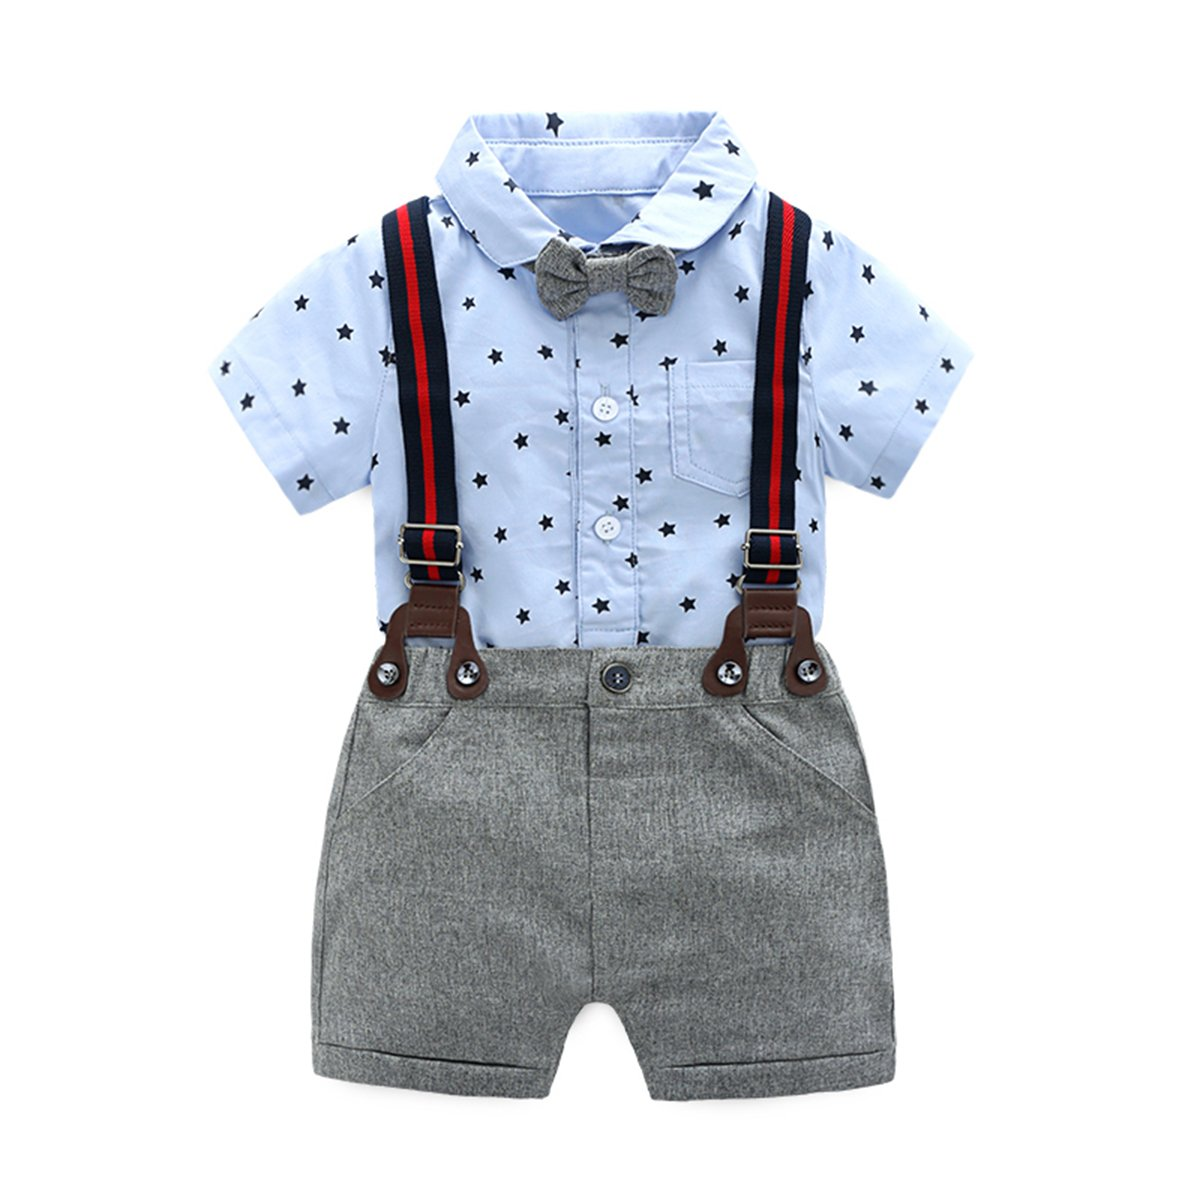 Baby Boys Gentleman Outfits Suits, Infant Short Sleeve Onesies+Bib Pants+Bow Tie Clothing Sets,Blue,66(6-9M)